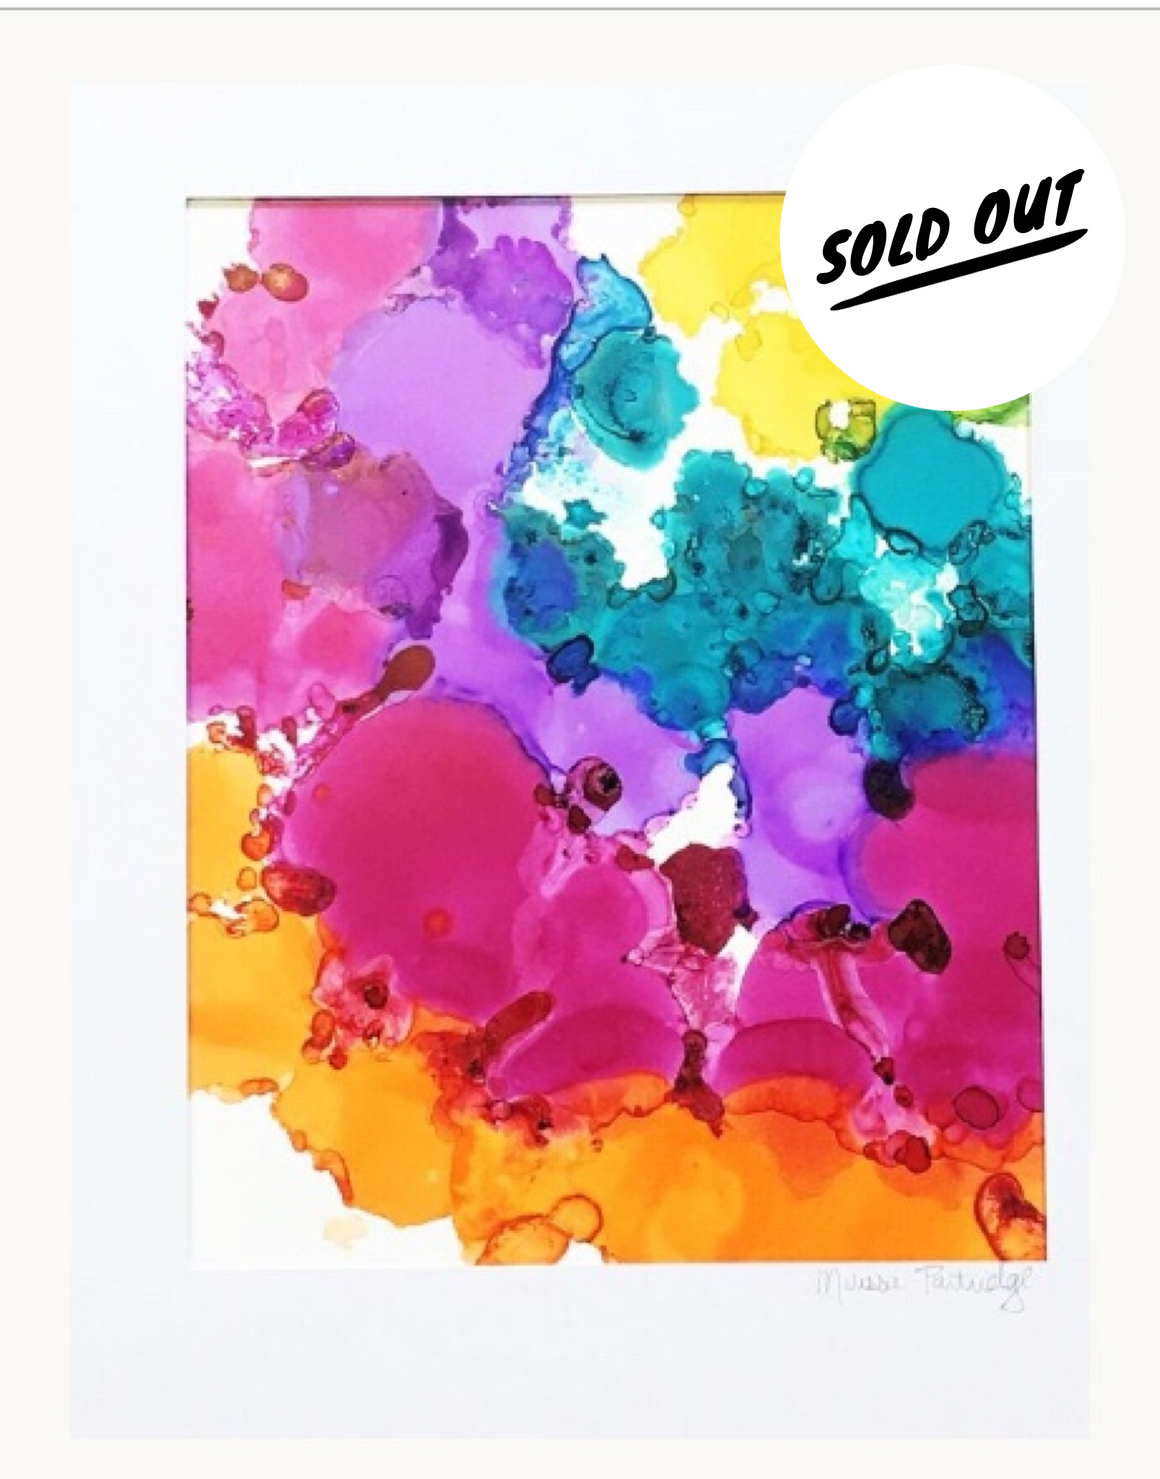 SOLD OUT Rainbow Joy Alcohol Ink Art on Yupo Paper